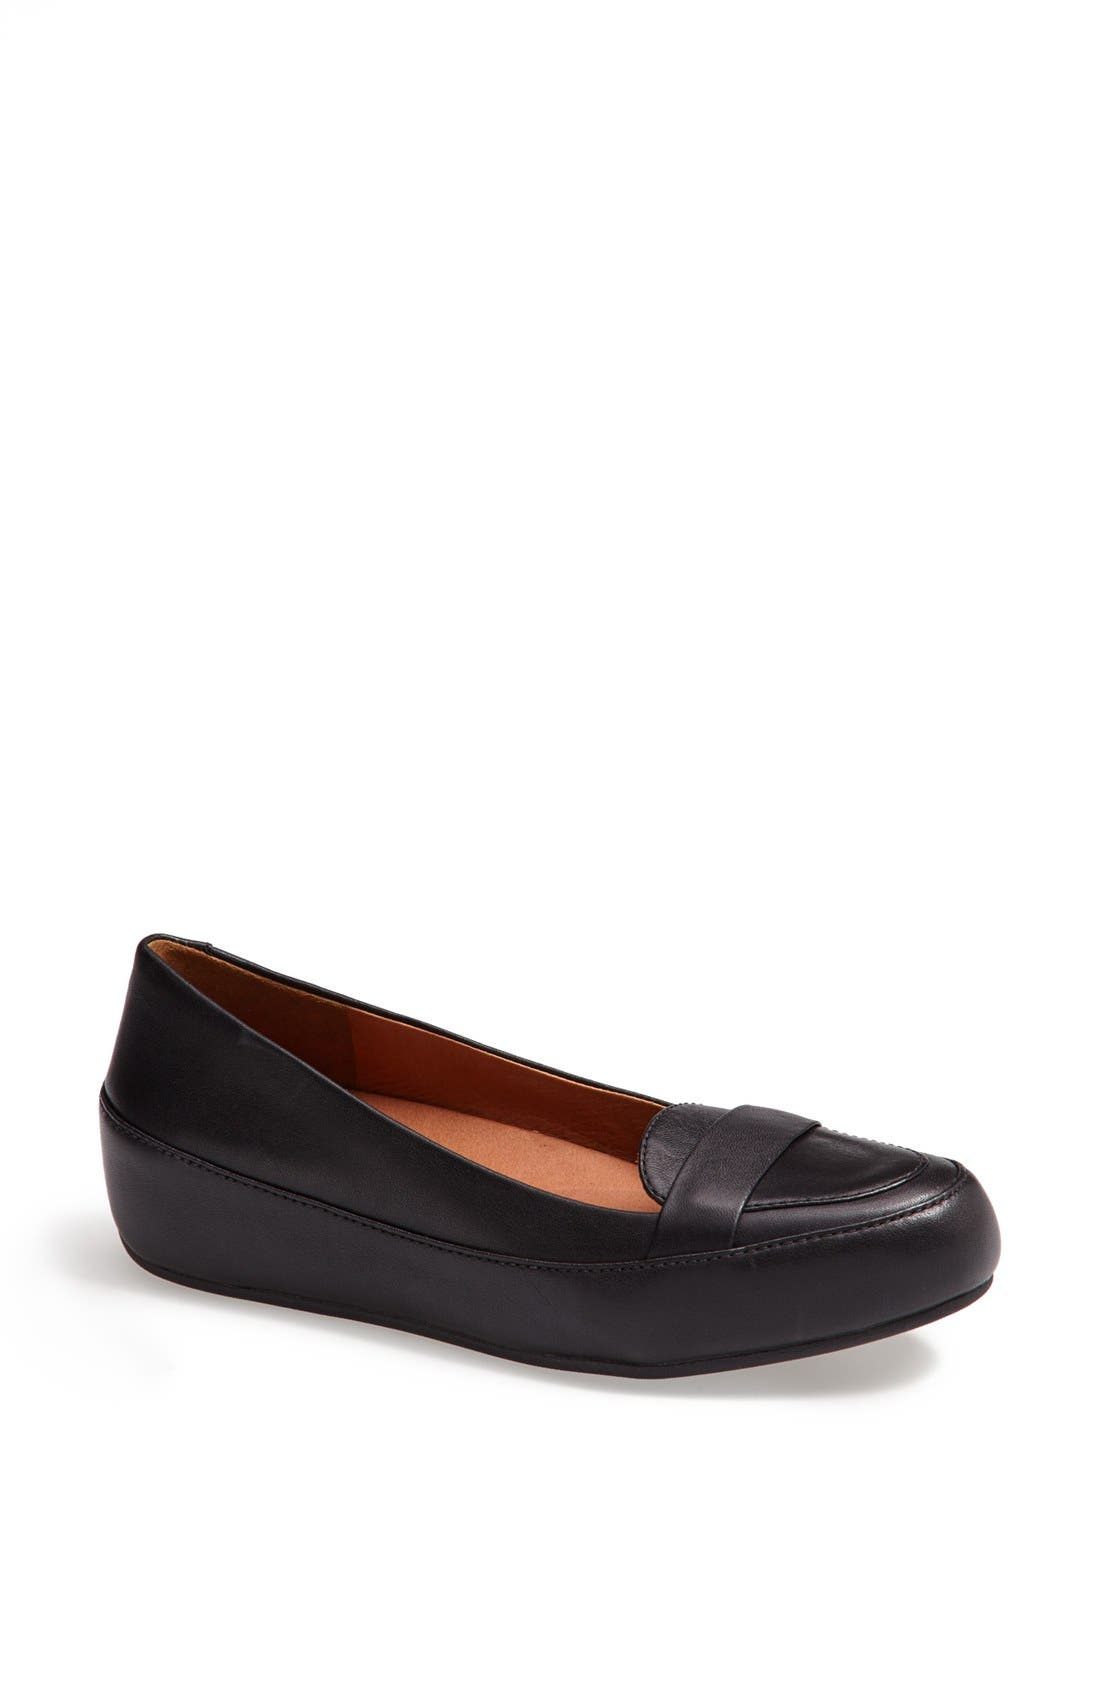 Main Image - FitFlop 'Dué™ Pop' Leather Loafer